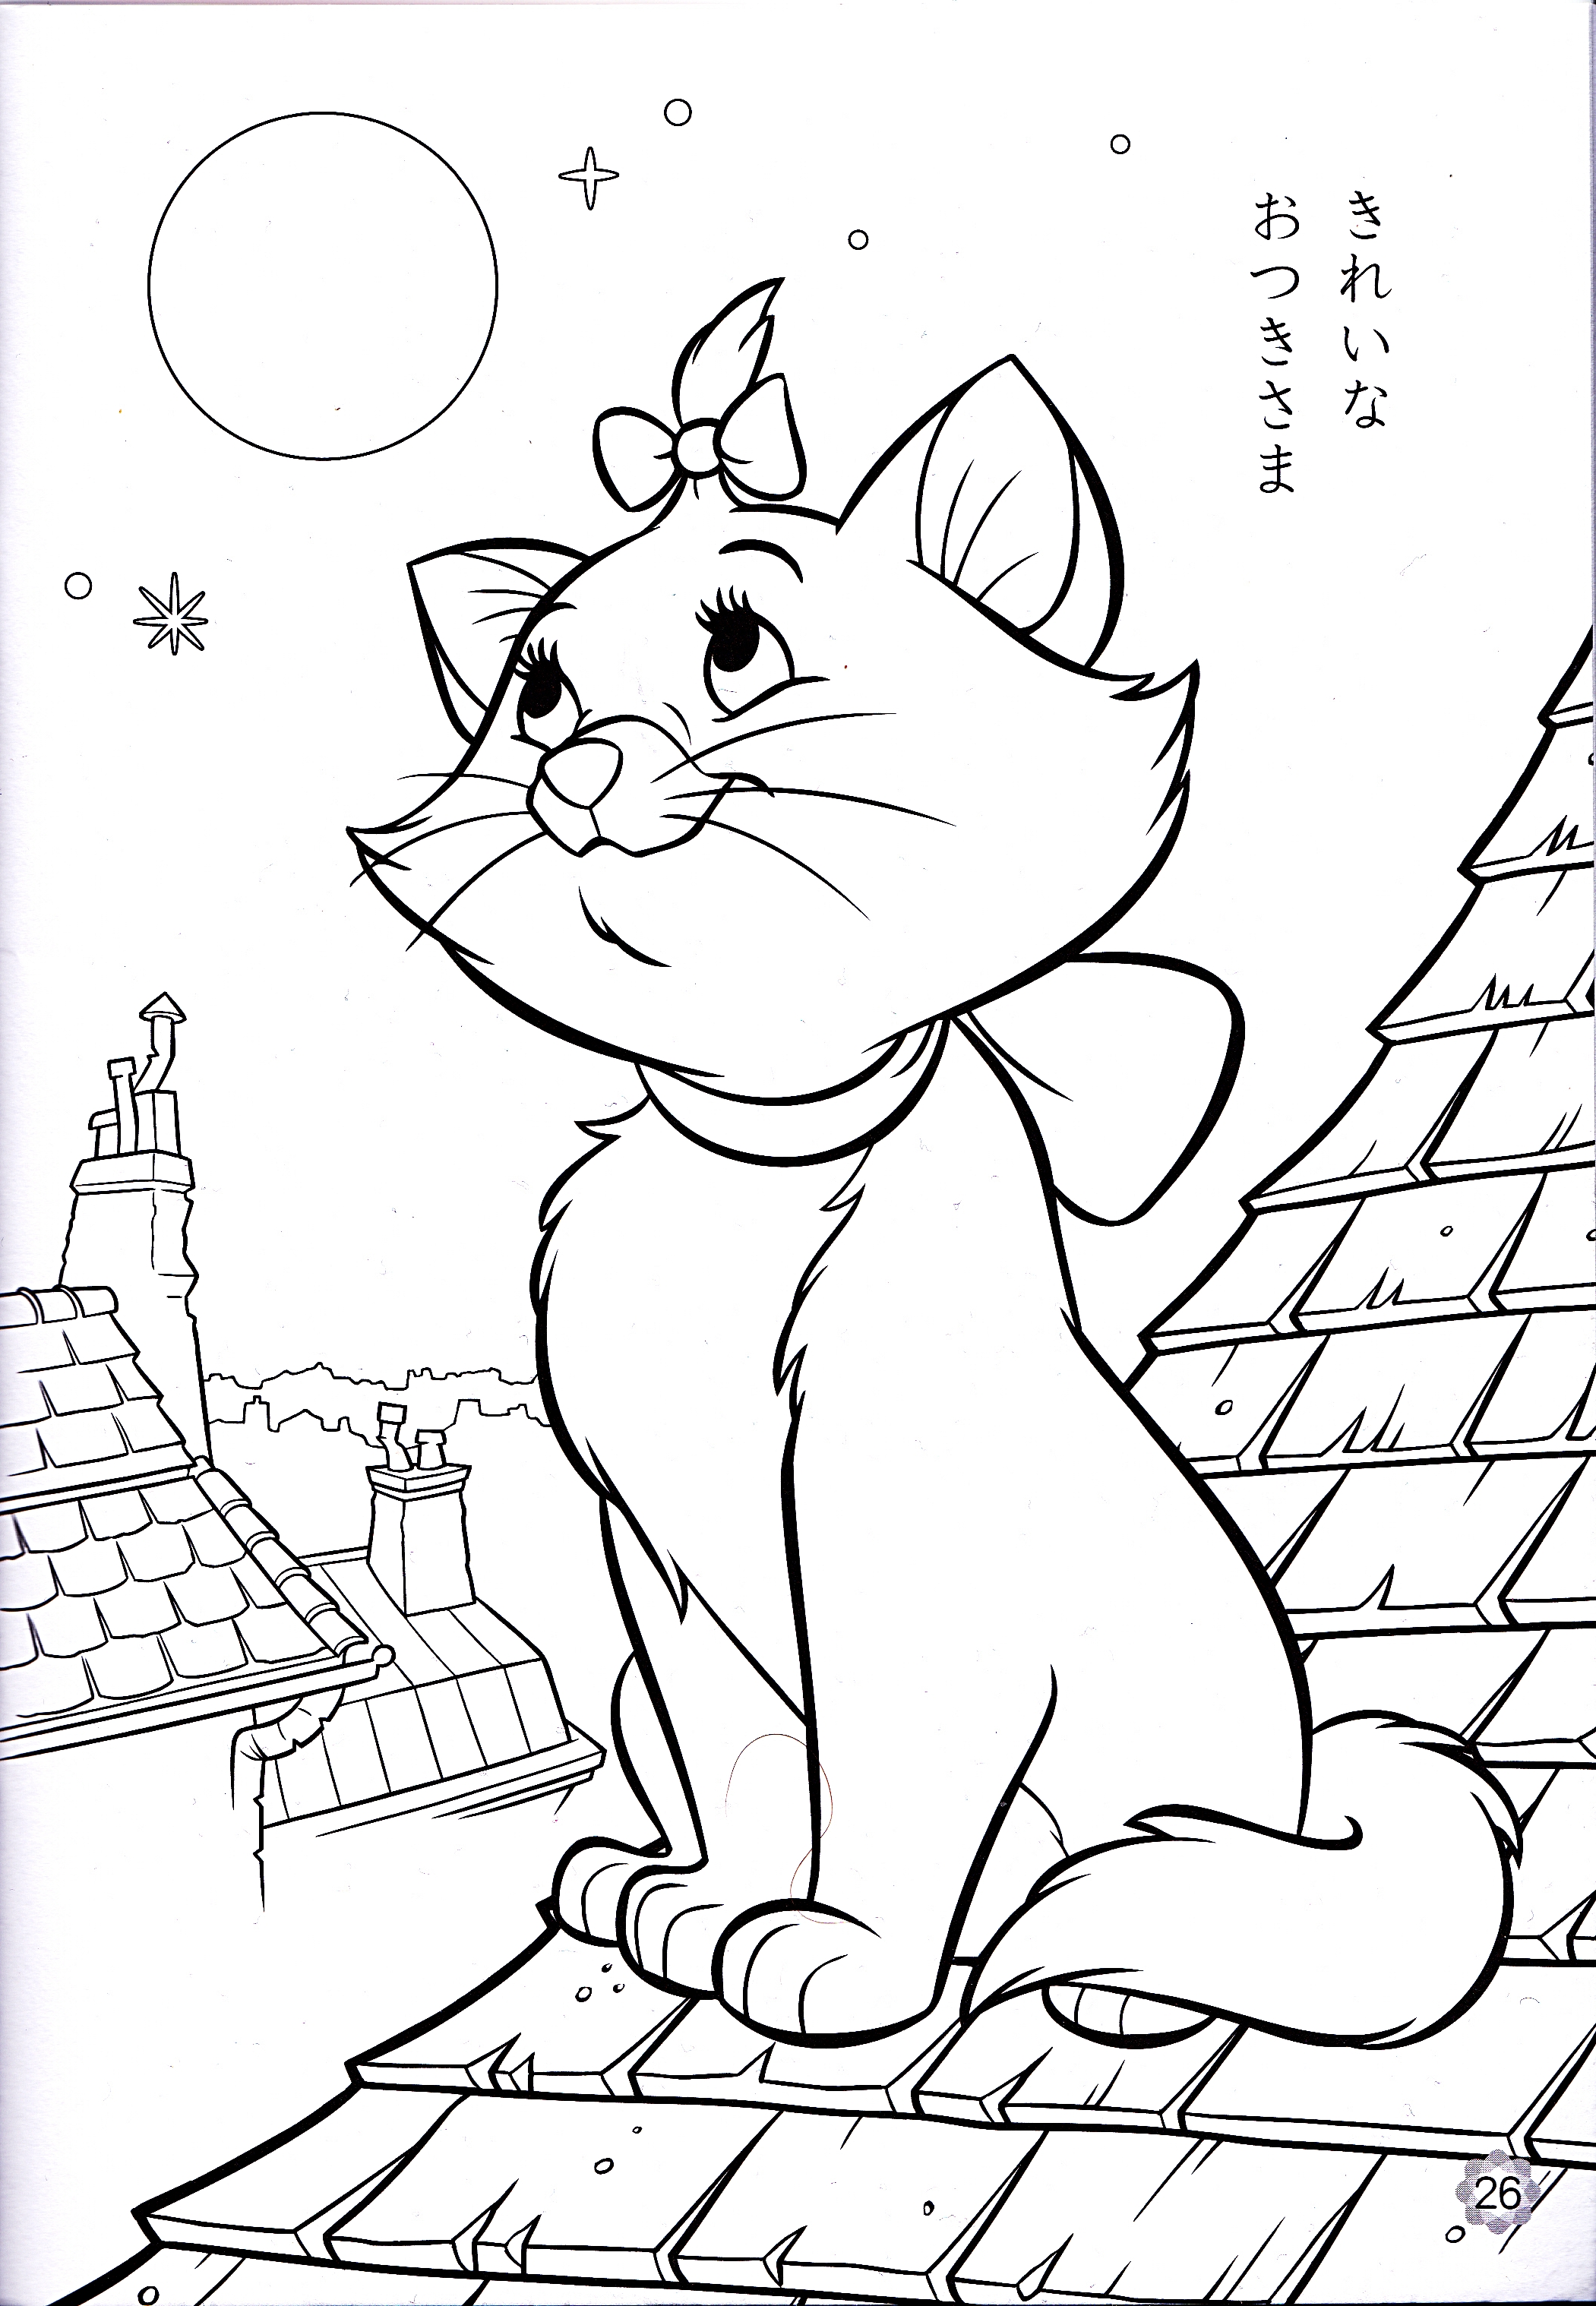 Walt Disney Coloring Pages - Marie - Walt Disney ... | free colouring pages to print disney